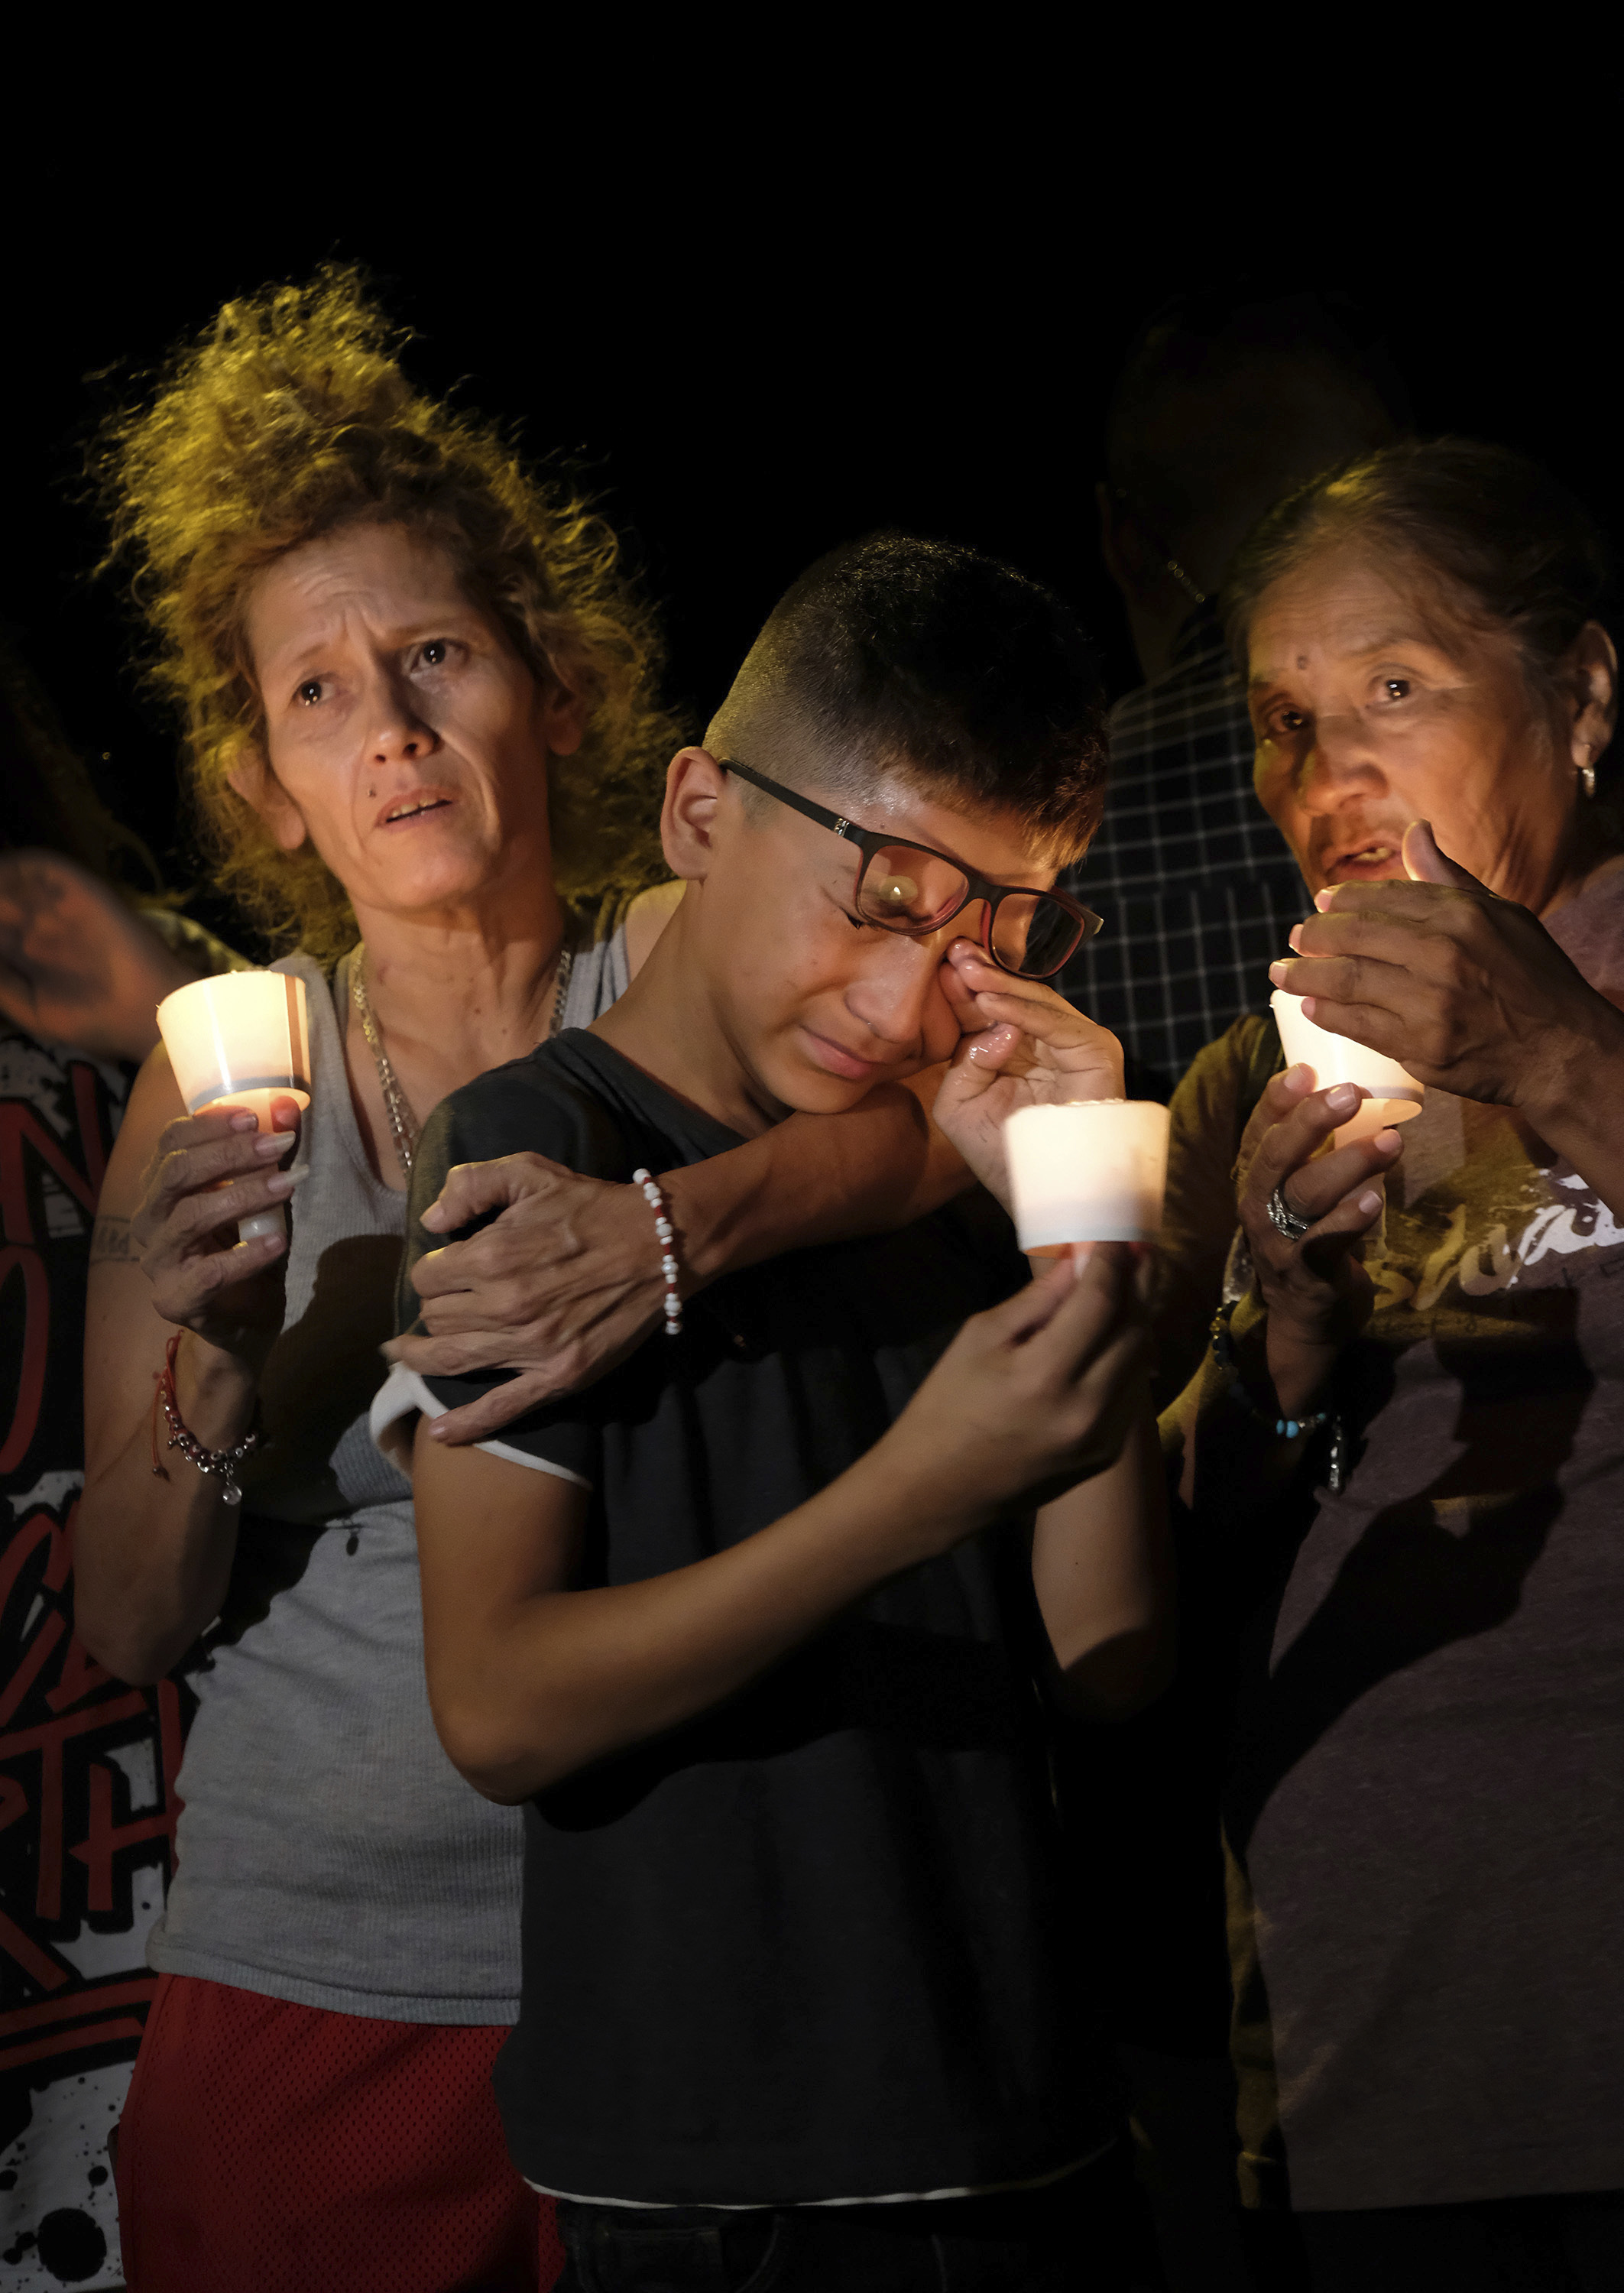 <div class='meta'><div class='origin-logo' data-origin='none'></div><span class='caption-text' data-credit='Laura Skelding/AP'>Mona Rodriguez, Jayanthony Hernandez, 12 and Juanita Rodriguez, from left, participate in a candlelight vigil held for the victims of the shooting.</span></div>